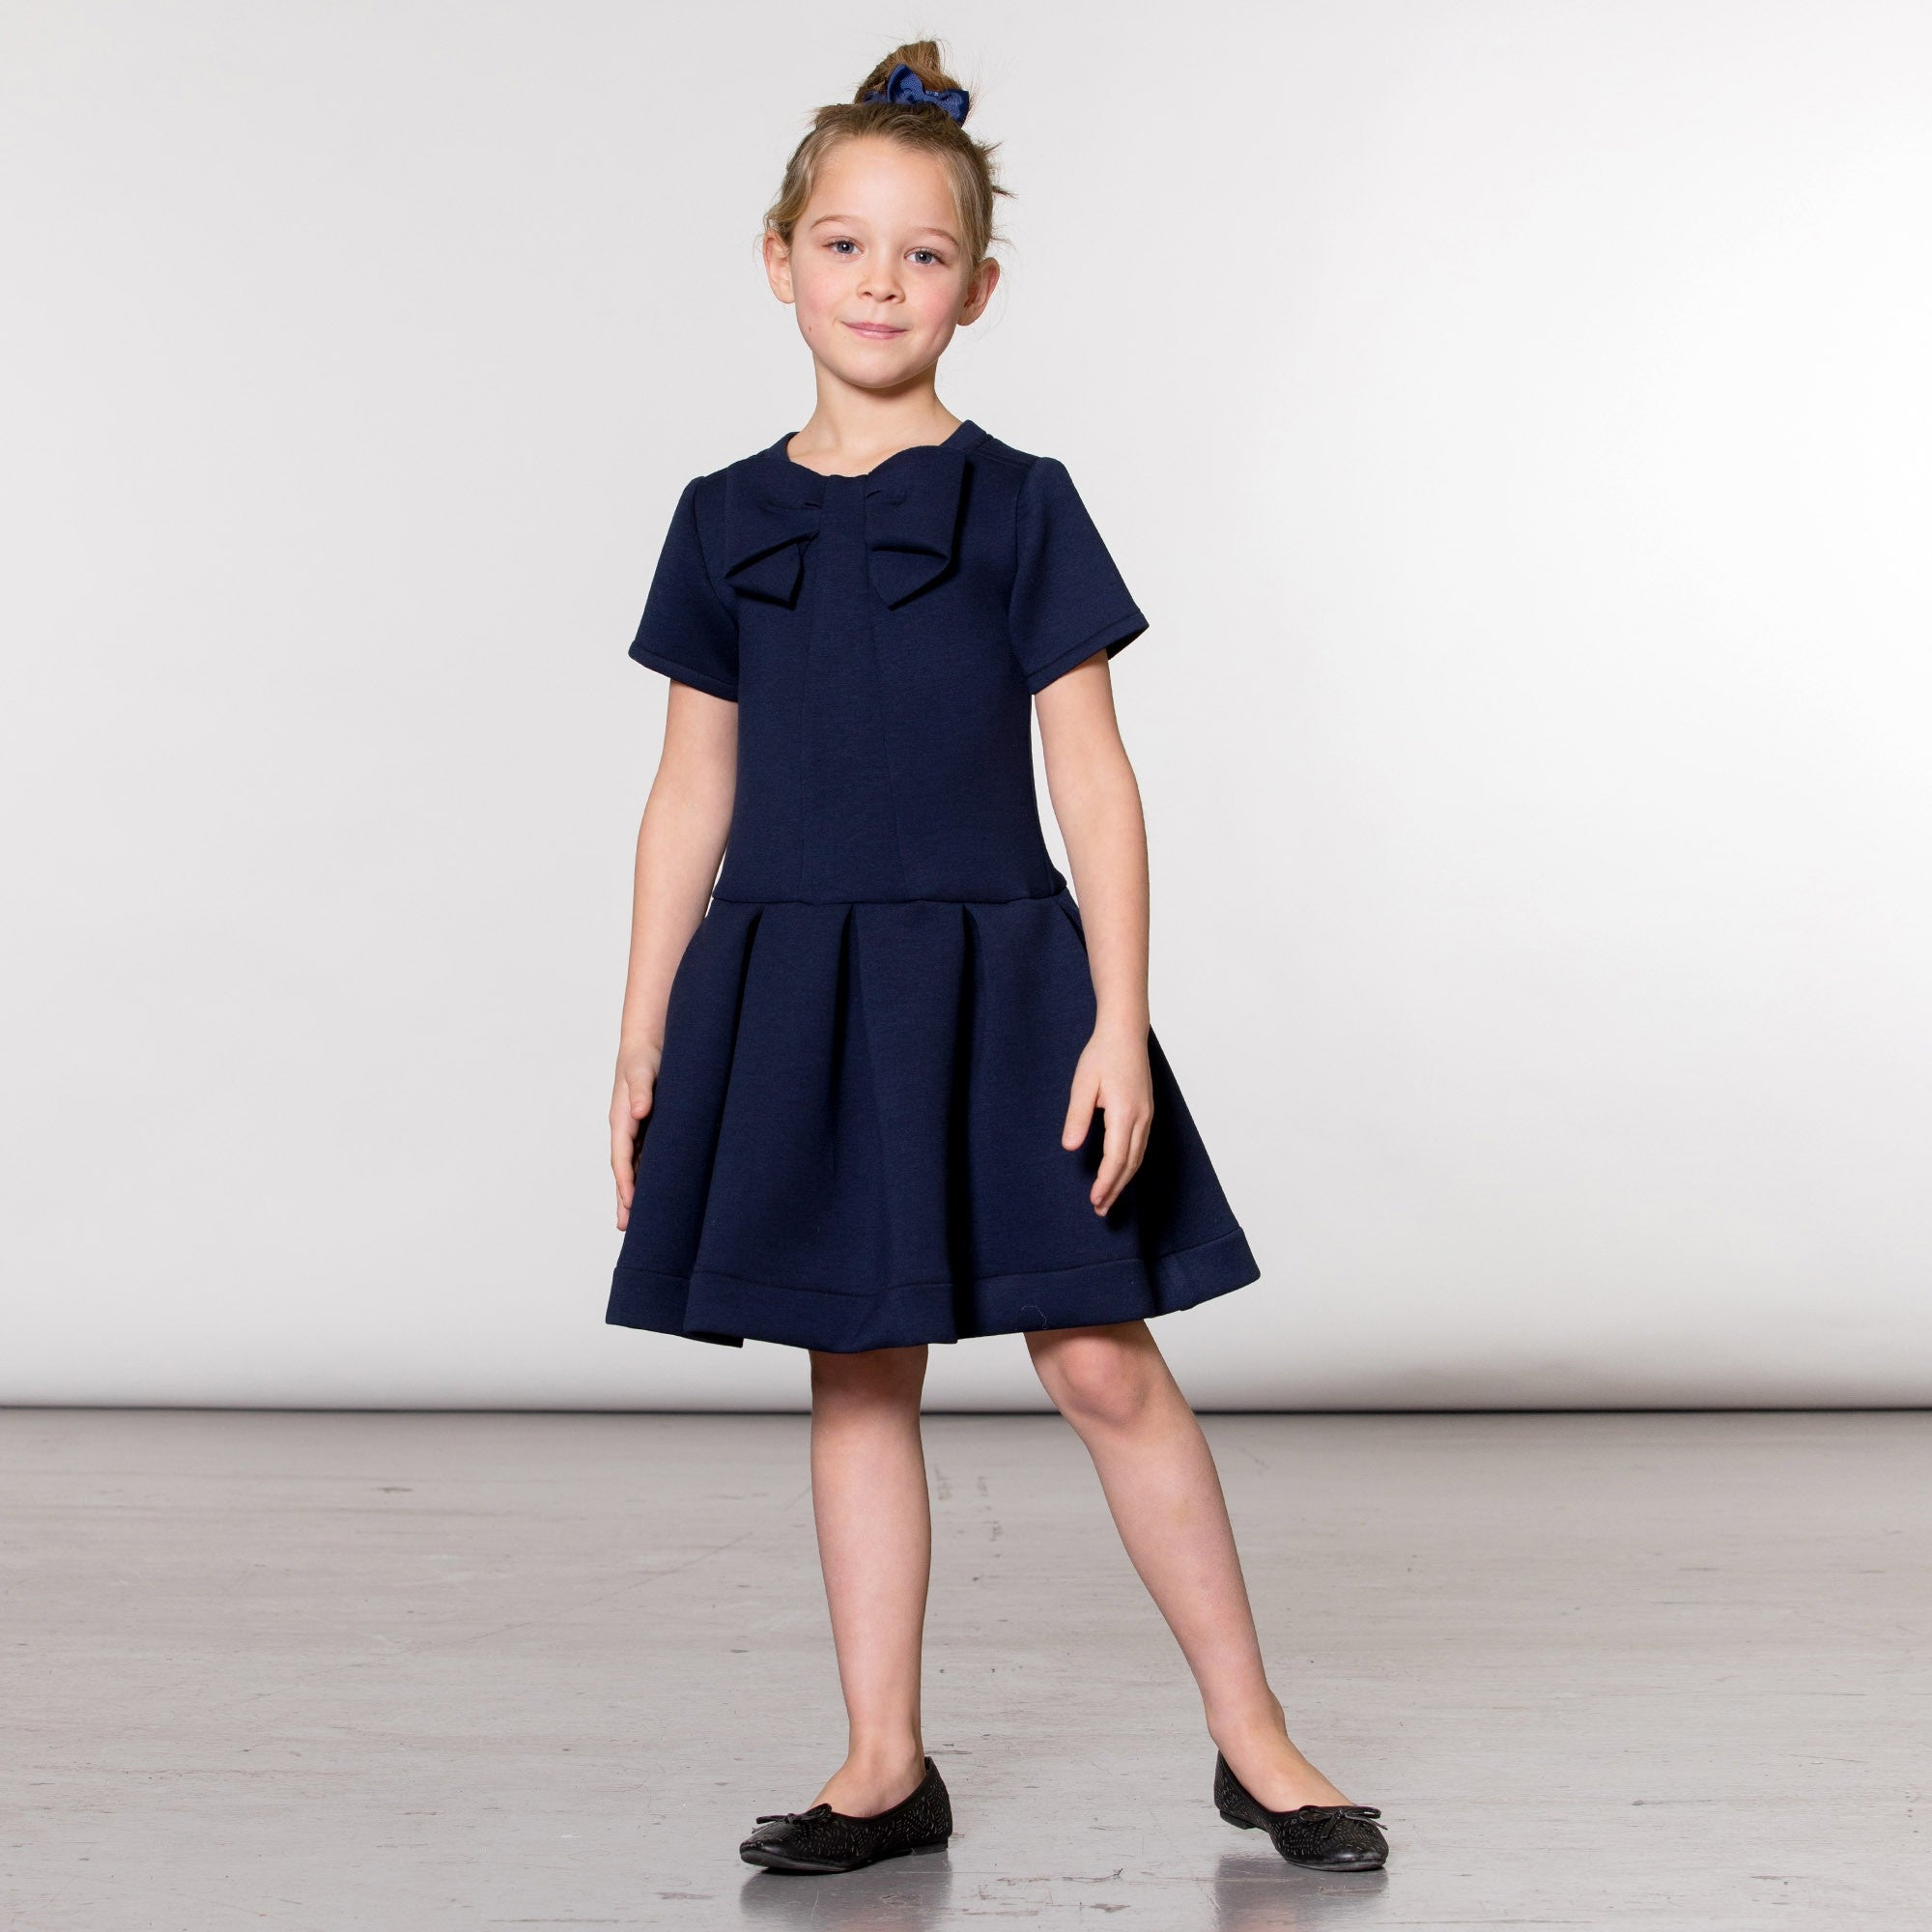 Navy Neoprene Short Sleeve Dress WIth Bow